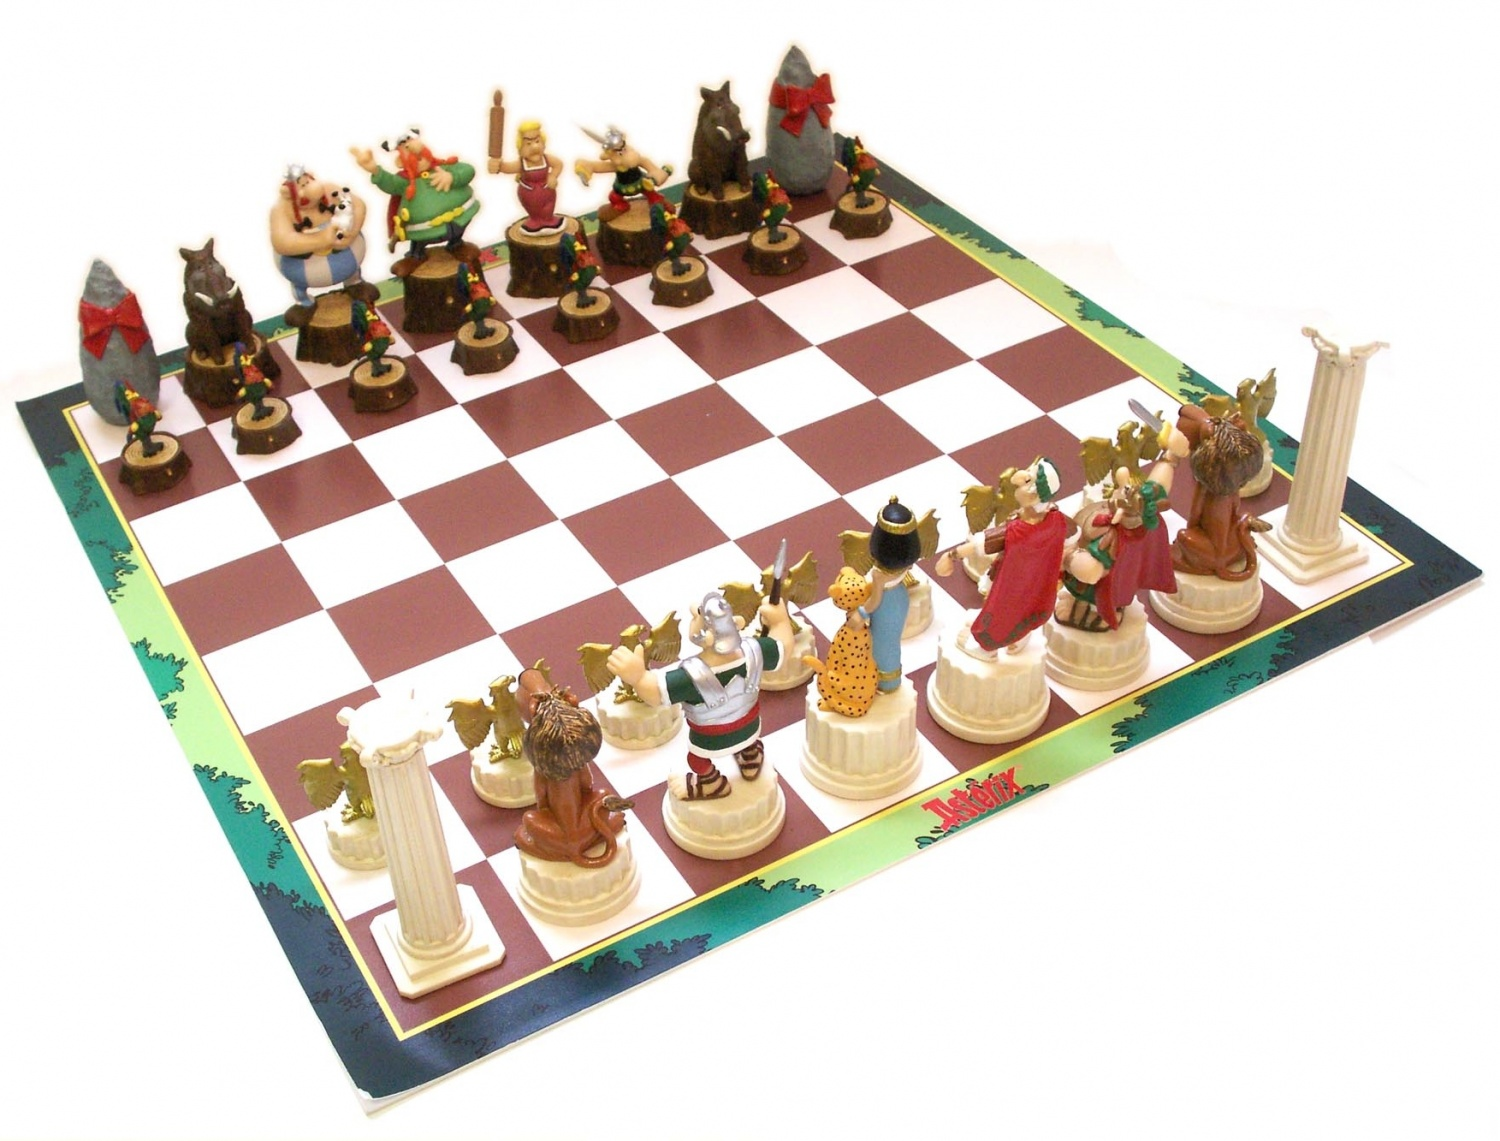 asterix jeu d 39 echecs plastoy plast69000. Black Bedroom Furniture Sets. Home Design Ideas